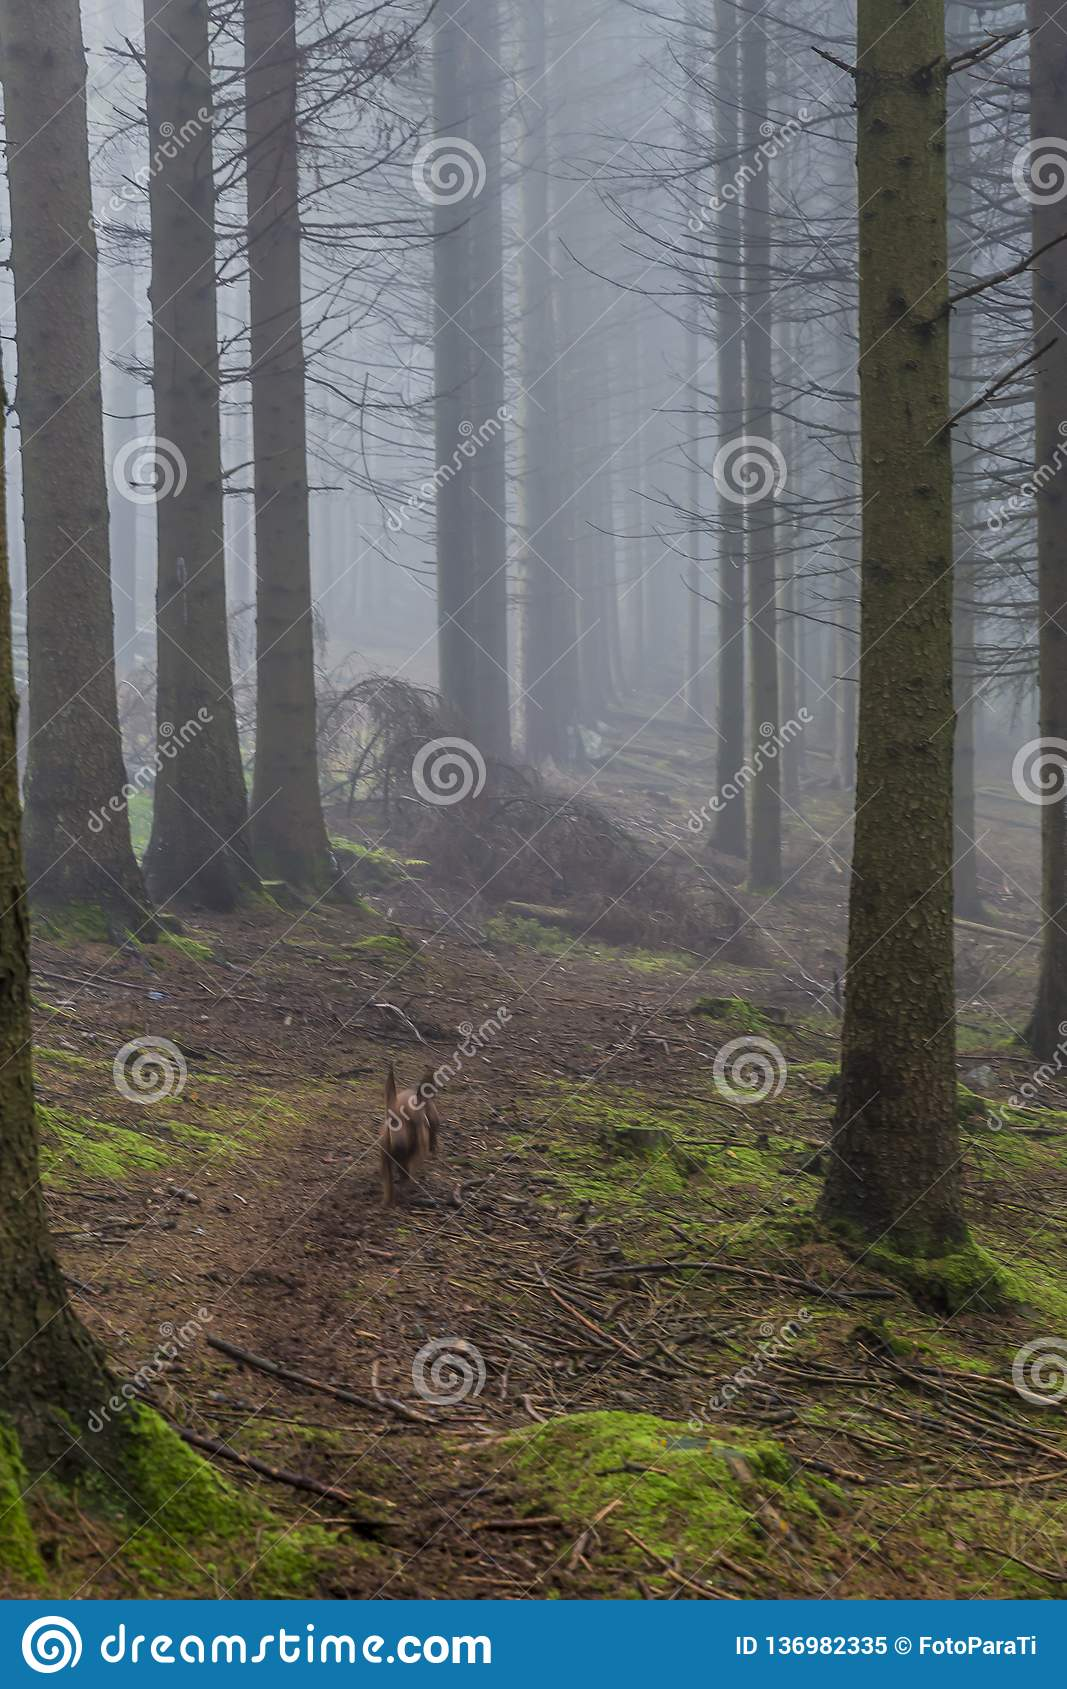 Image of a dog running among the tall pine trees in the forest